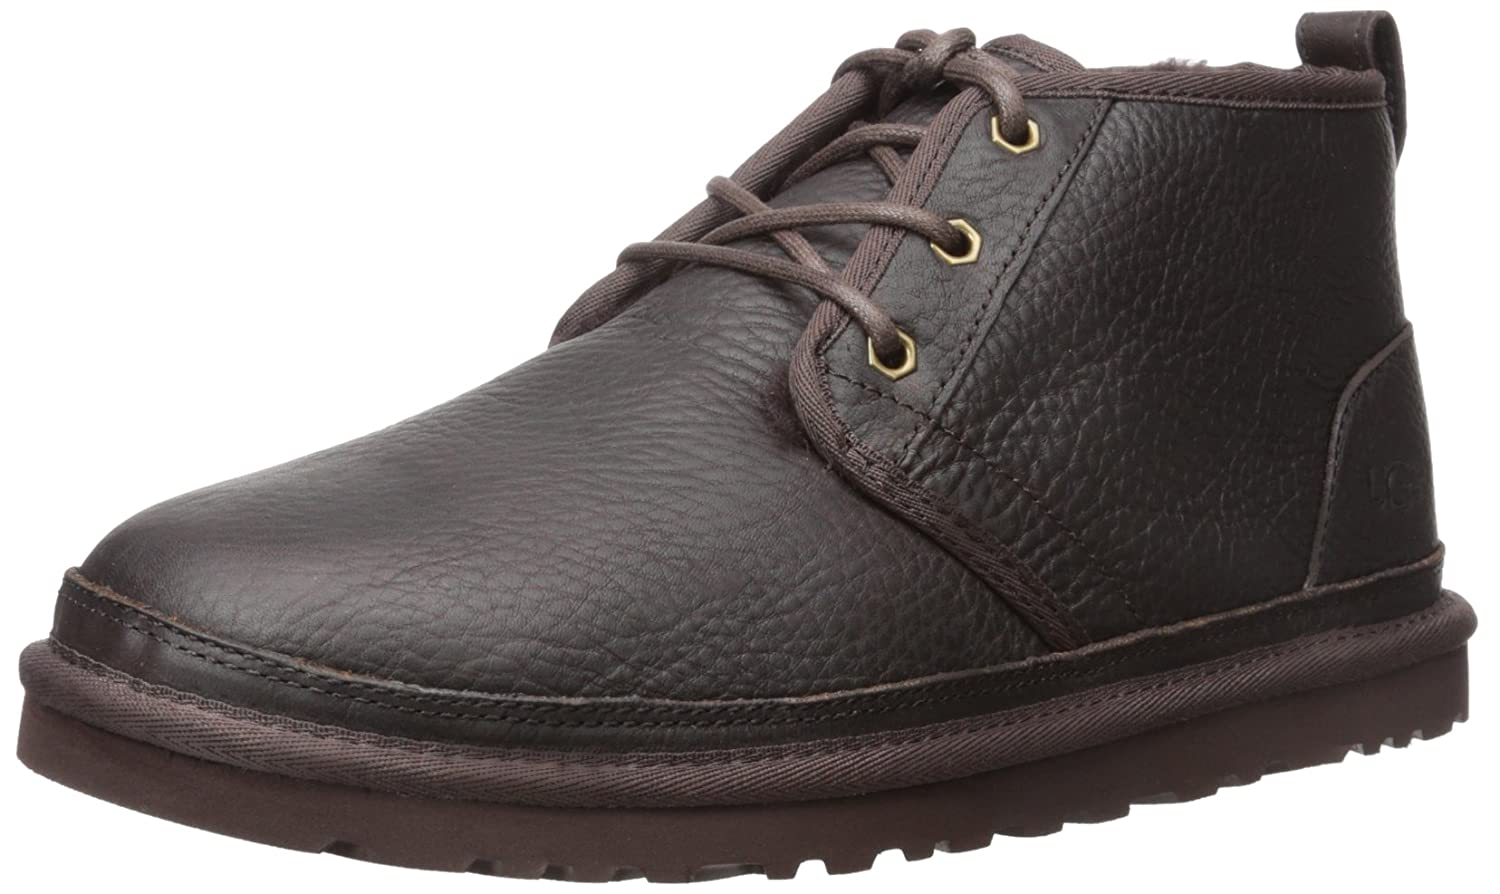 TALLA 52 EU. Ugg Men's Neumel Ankle-High Leather Boot